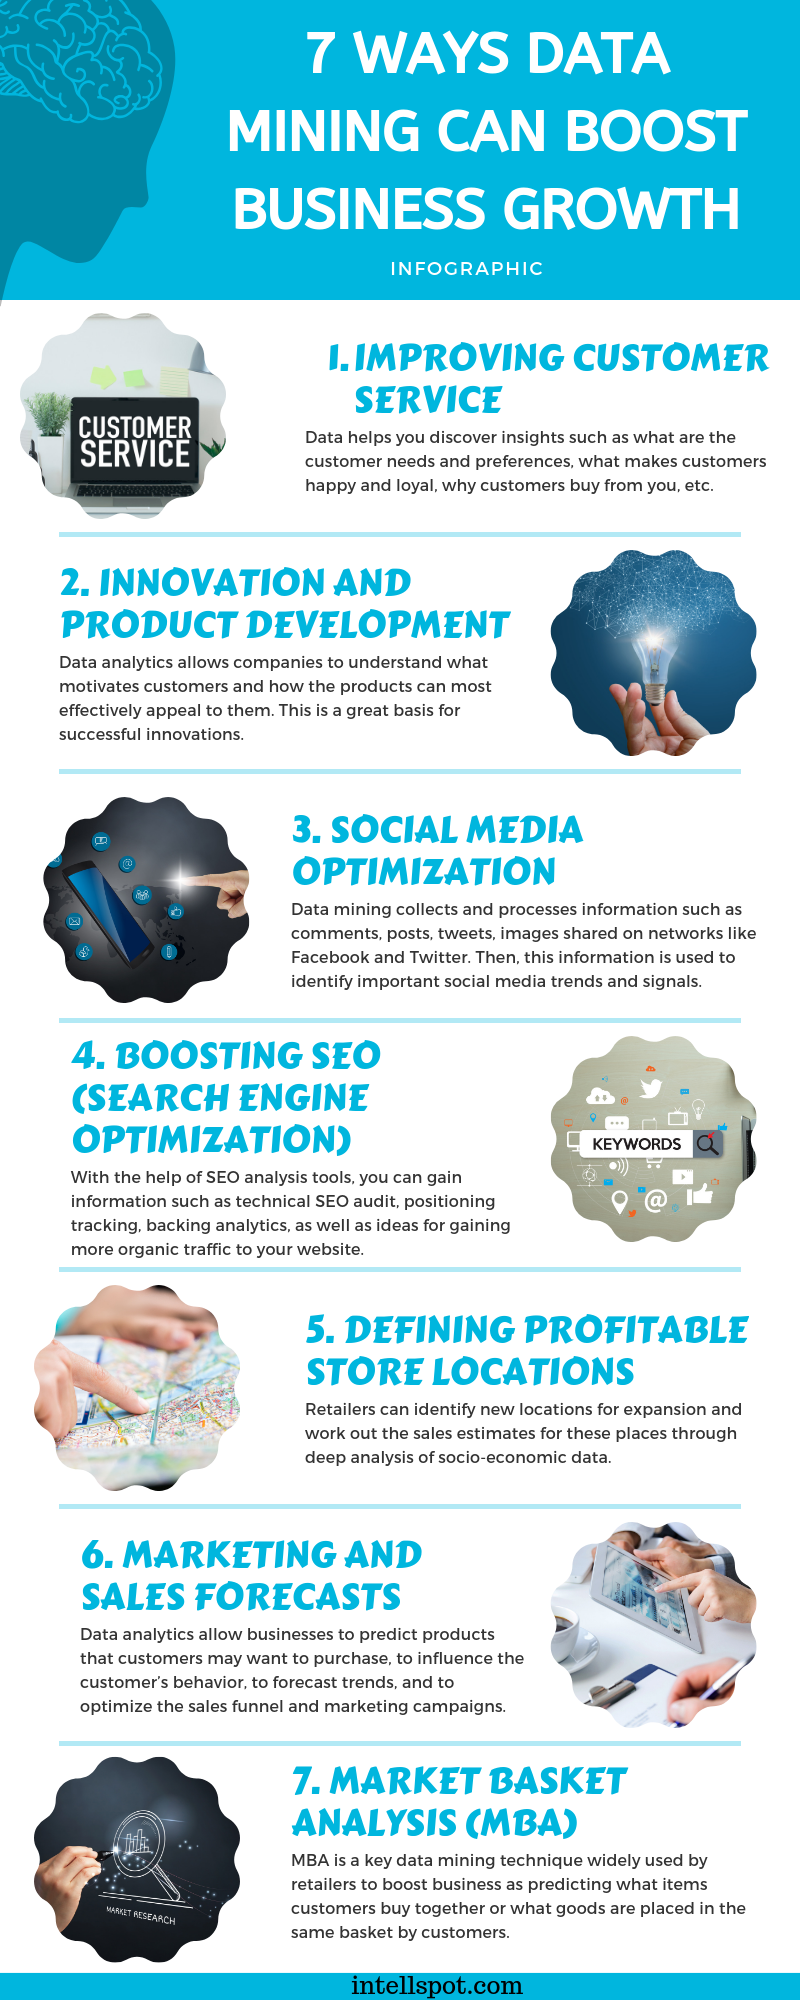 7 ways data mining help businesses growth - infographic